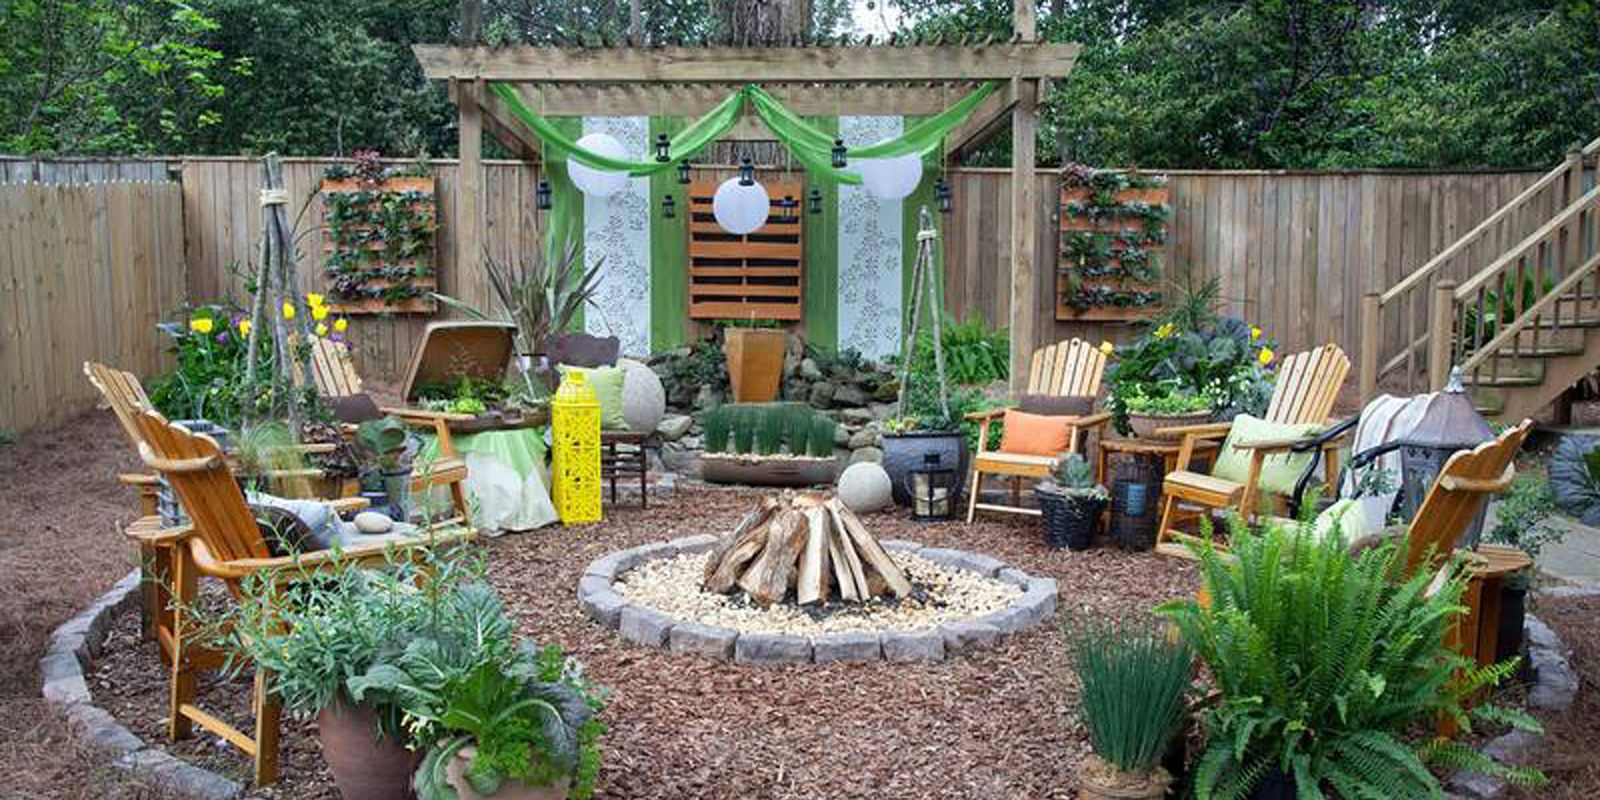 Backyard Oasis - Beautiful Backyard Ideas